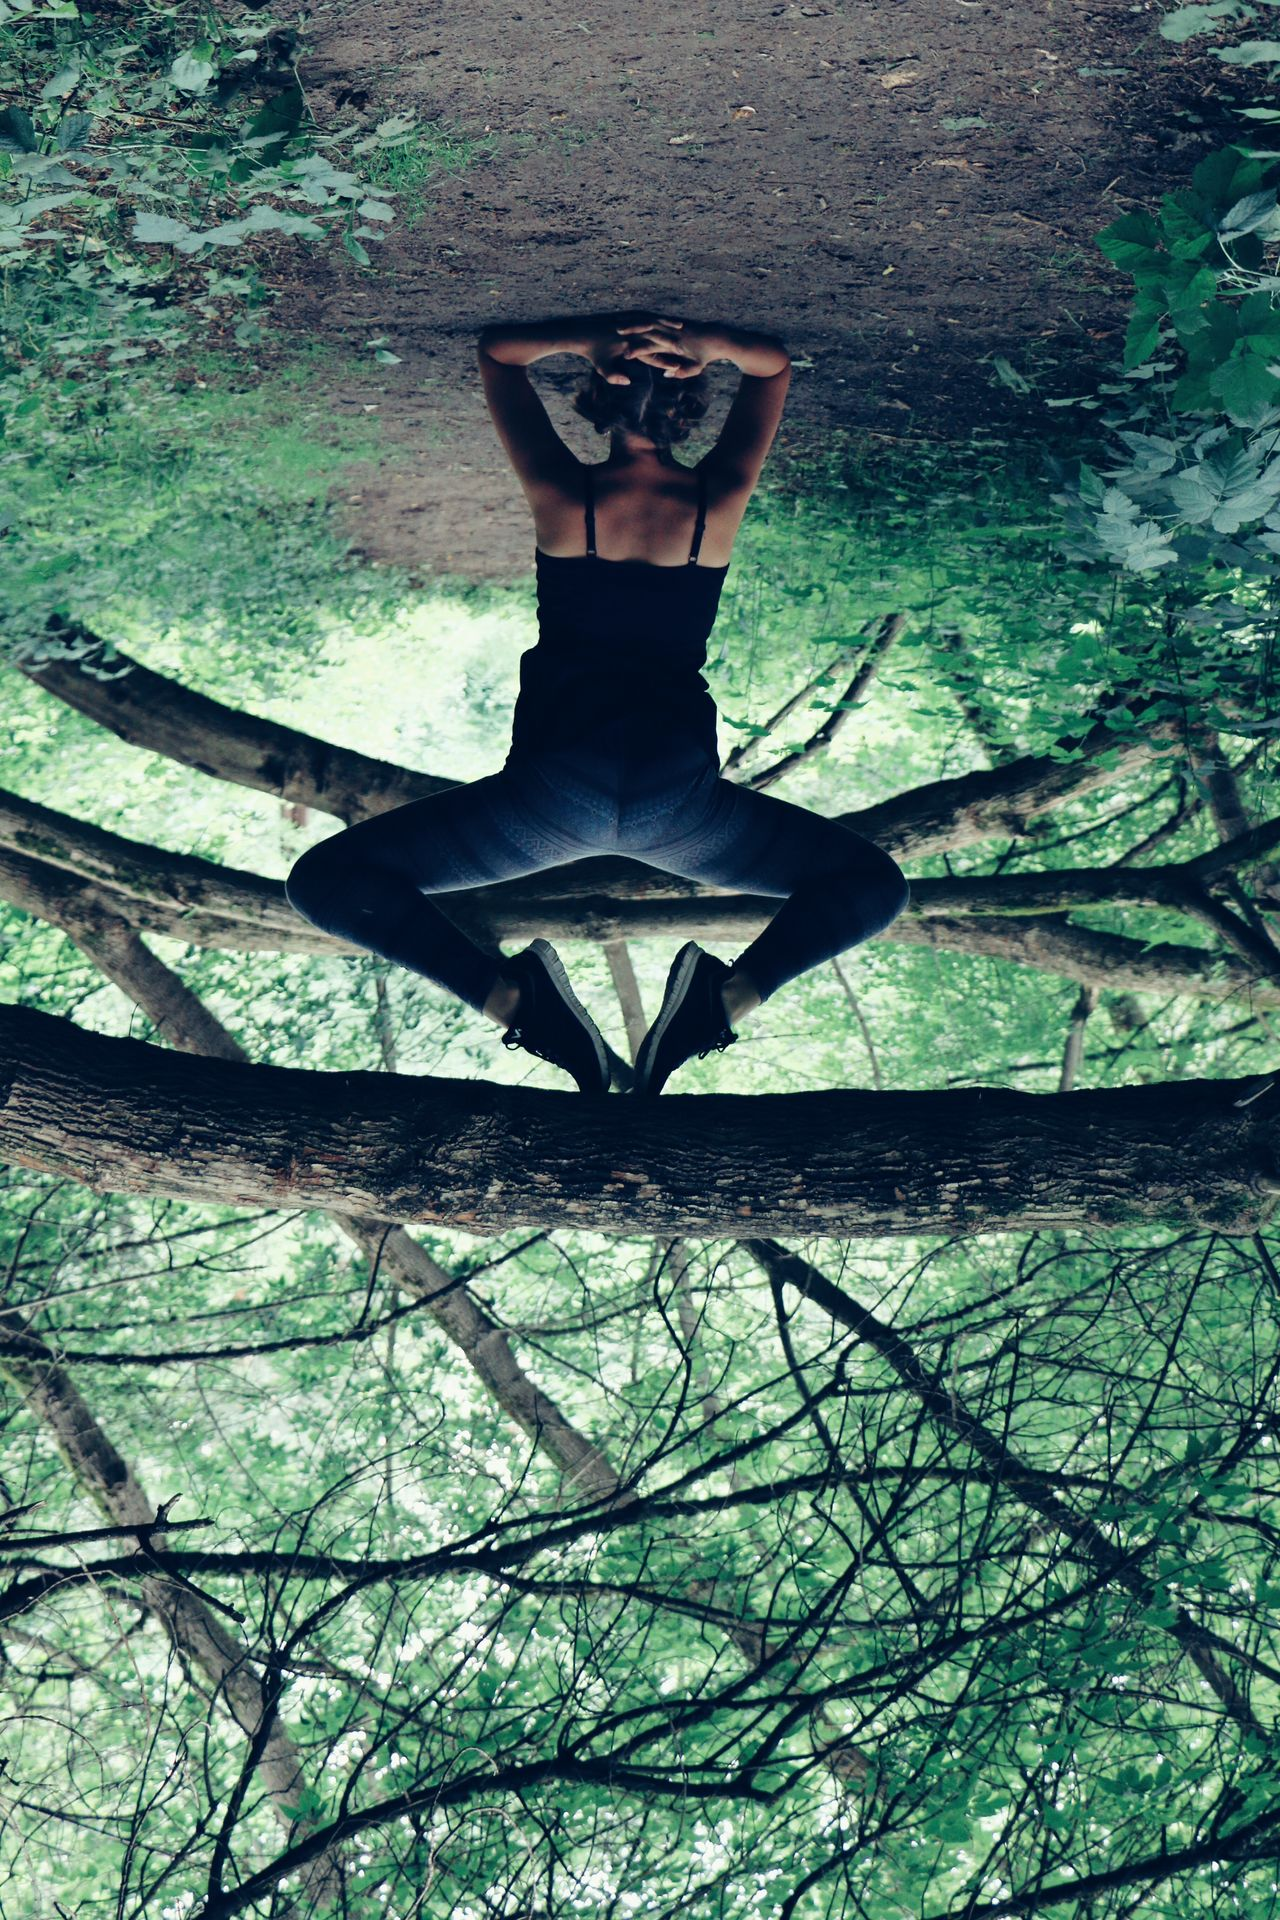 Crazy Me Gymnastics Tree Elbowstand Firest Nature Wild On The Way Adventure Club